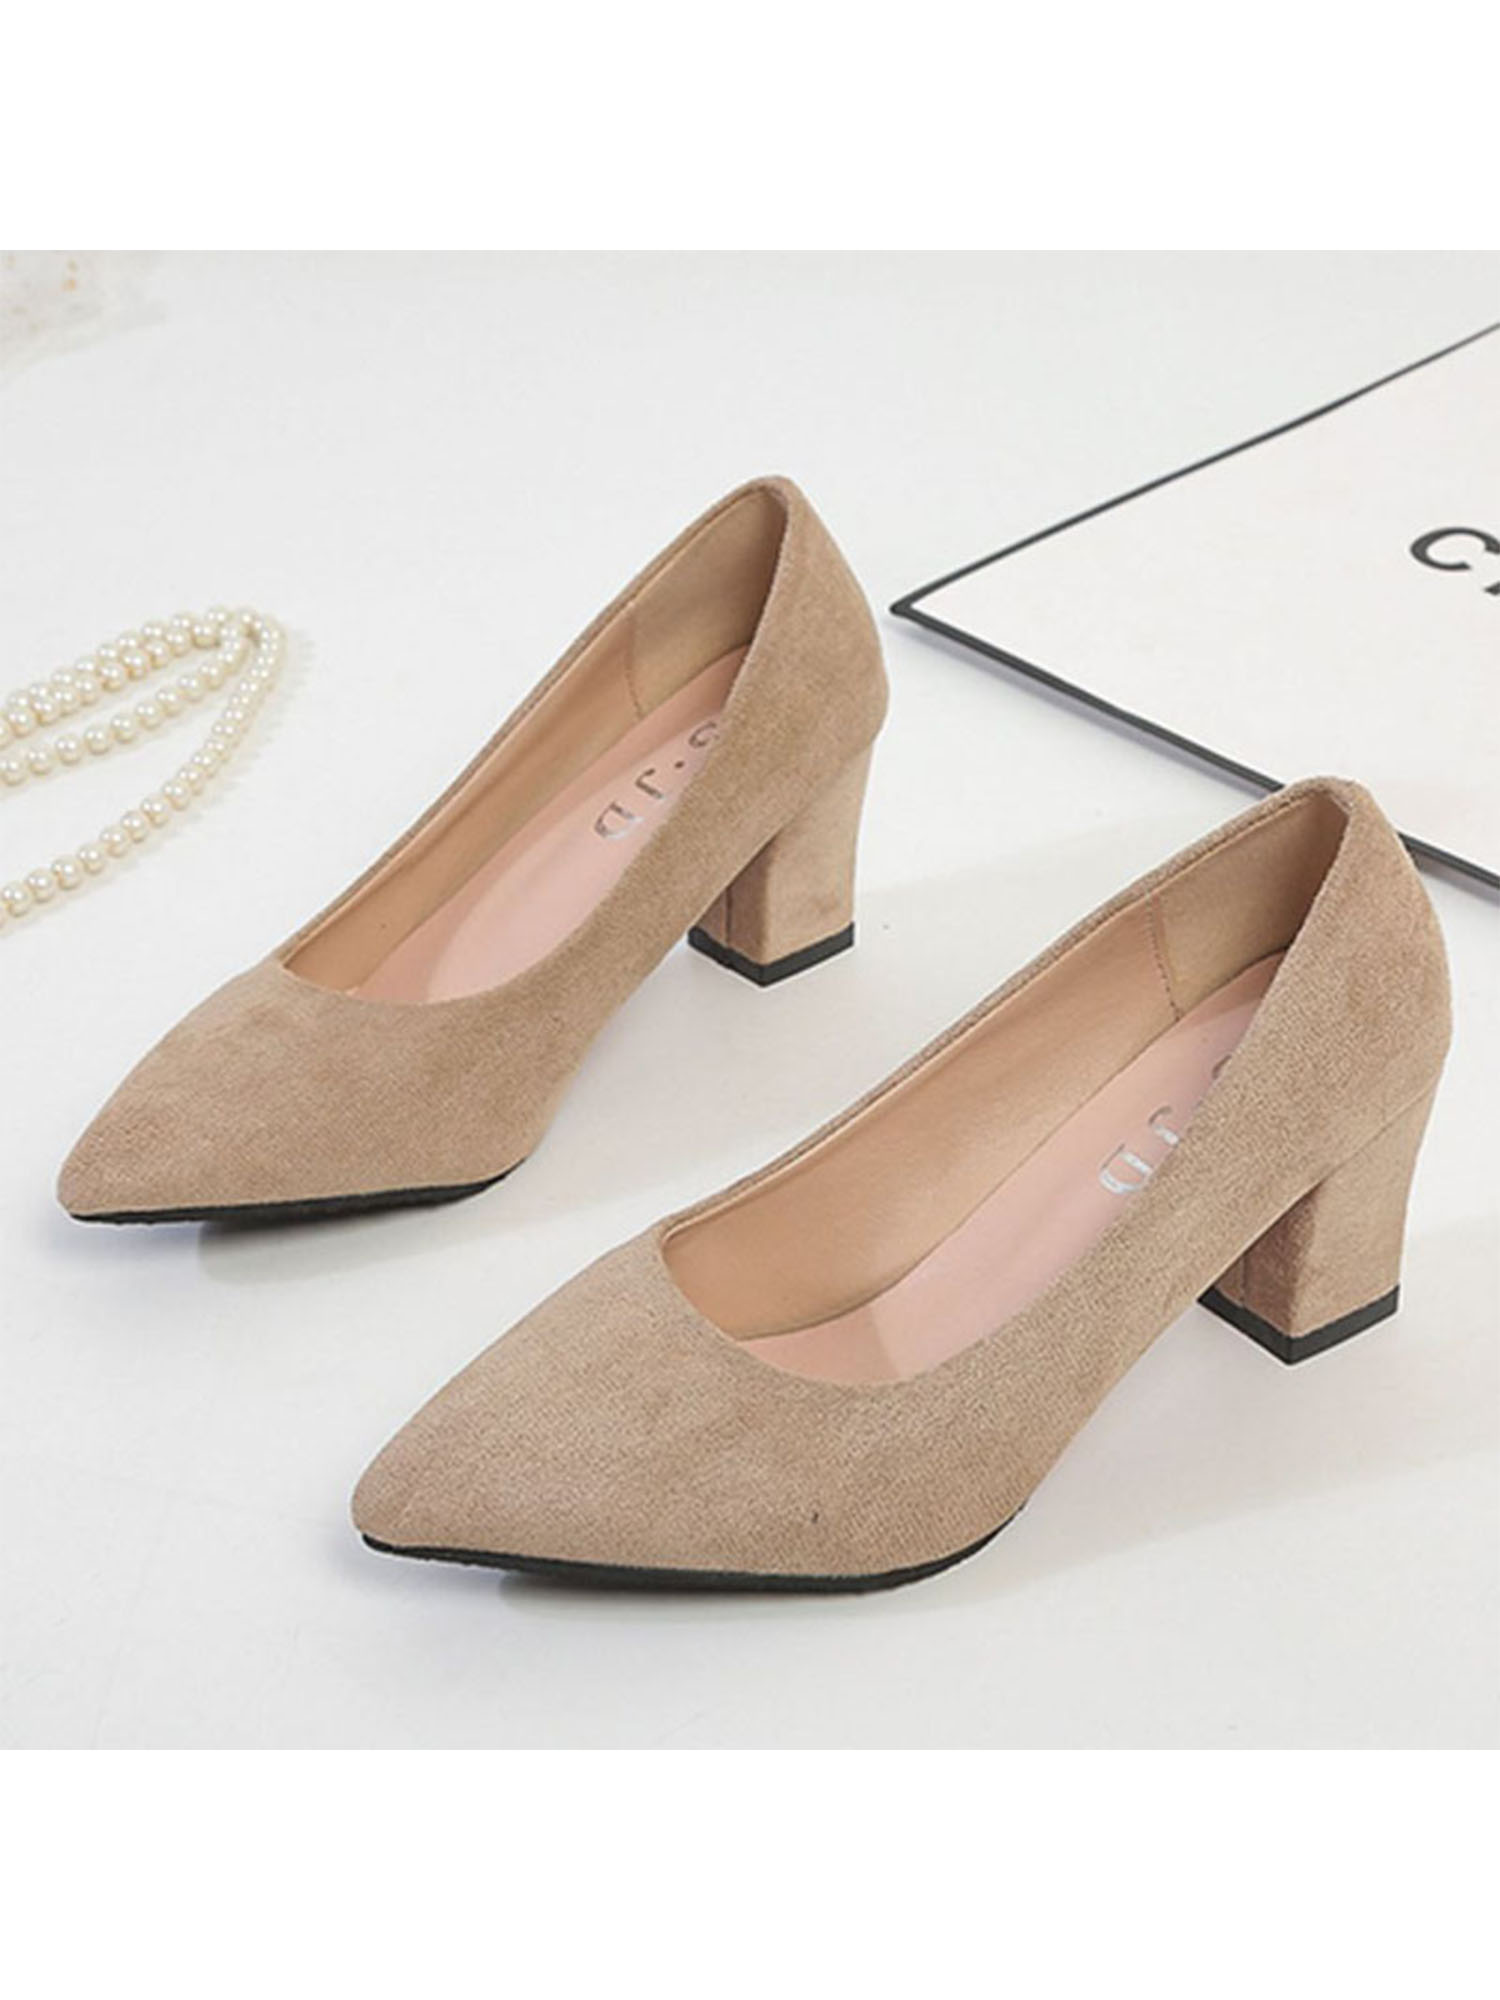 Details about  /Women Pumps Slip On Pointy Toe Low Heel Comfort Casual Office Shoes 6 Colors B